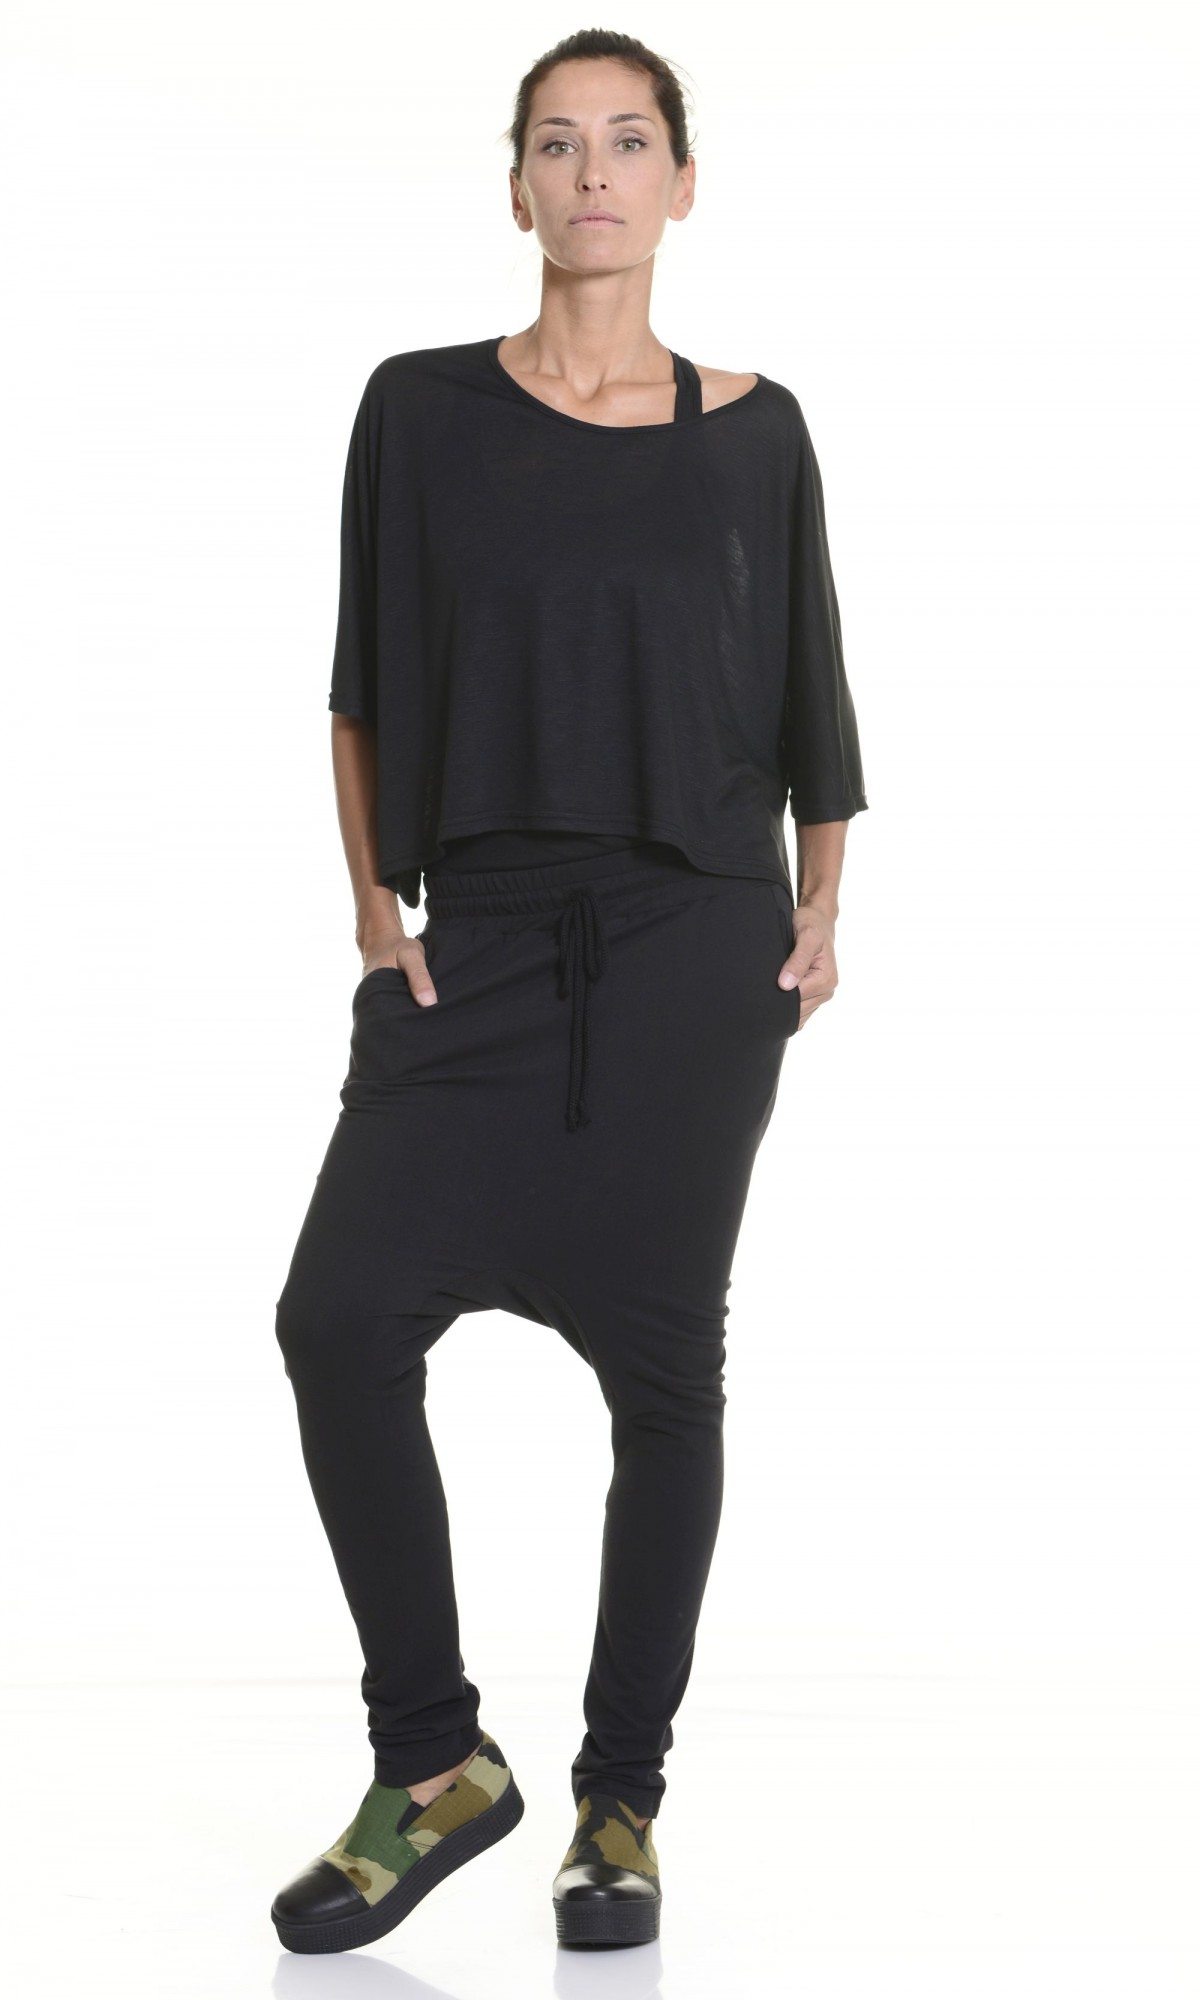 Pants - Loose Casual Black Drop Crotch Pants A05166